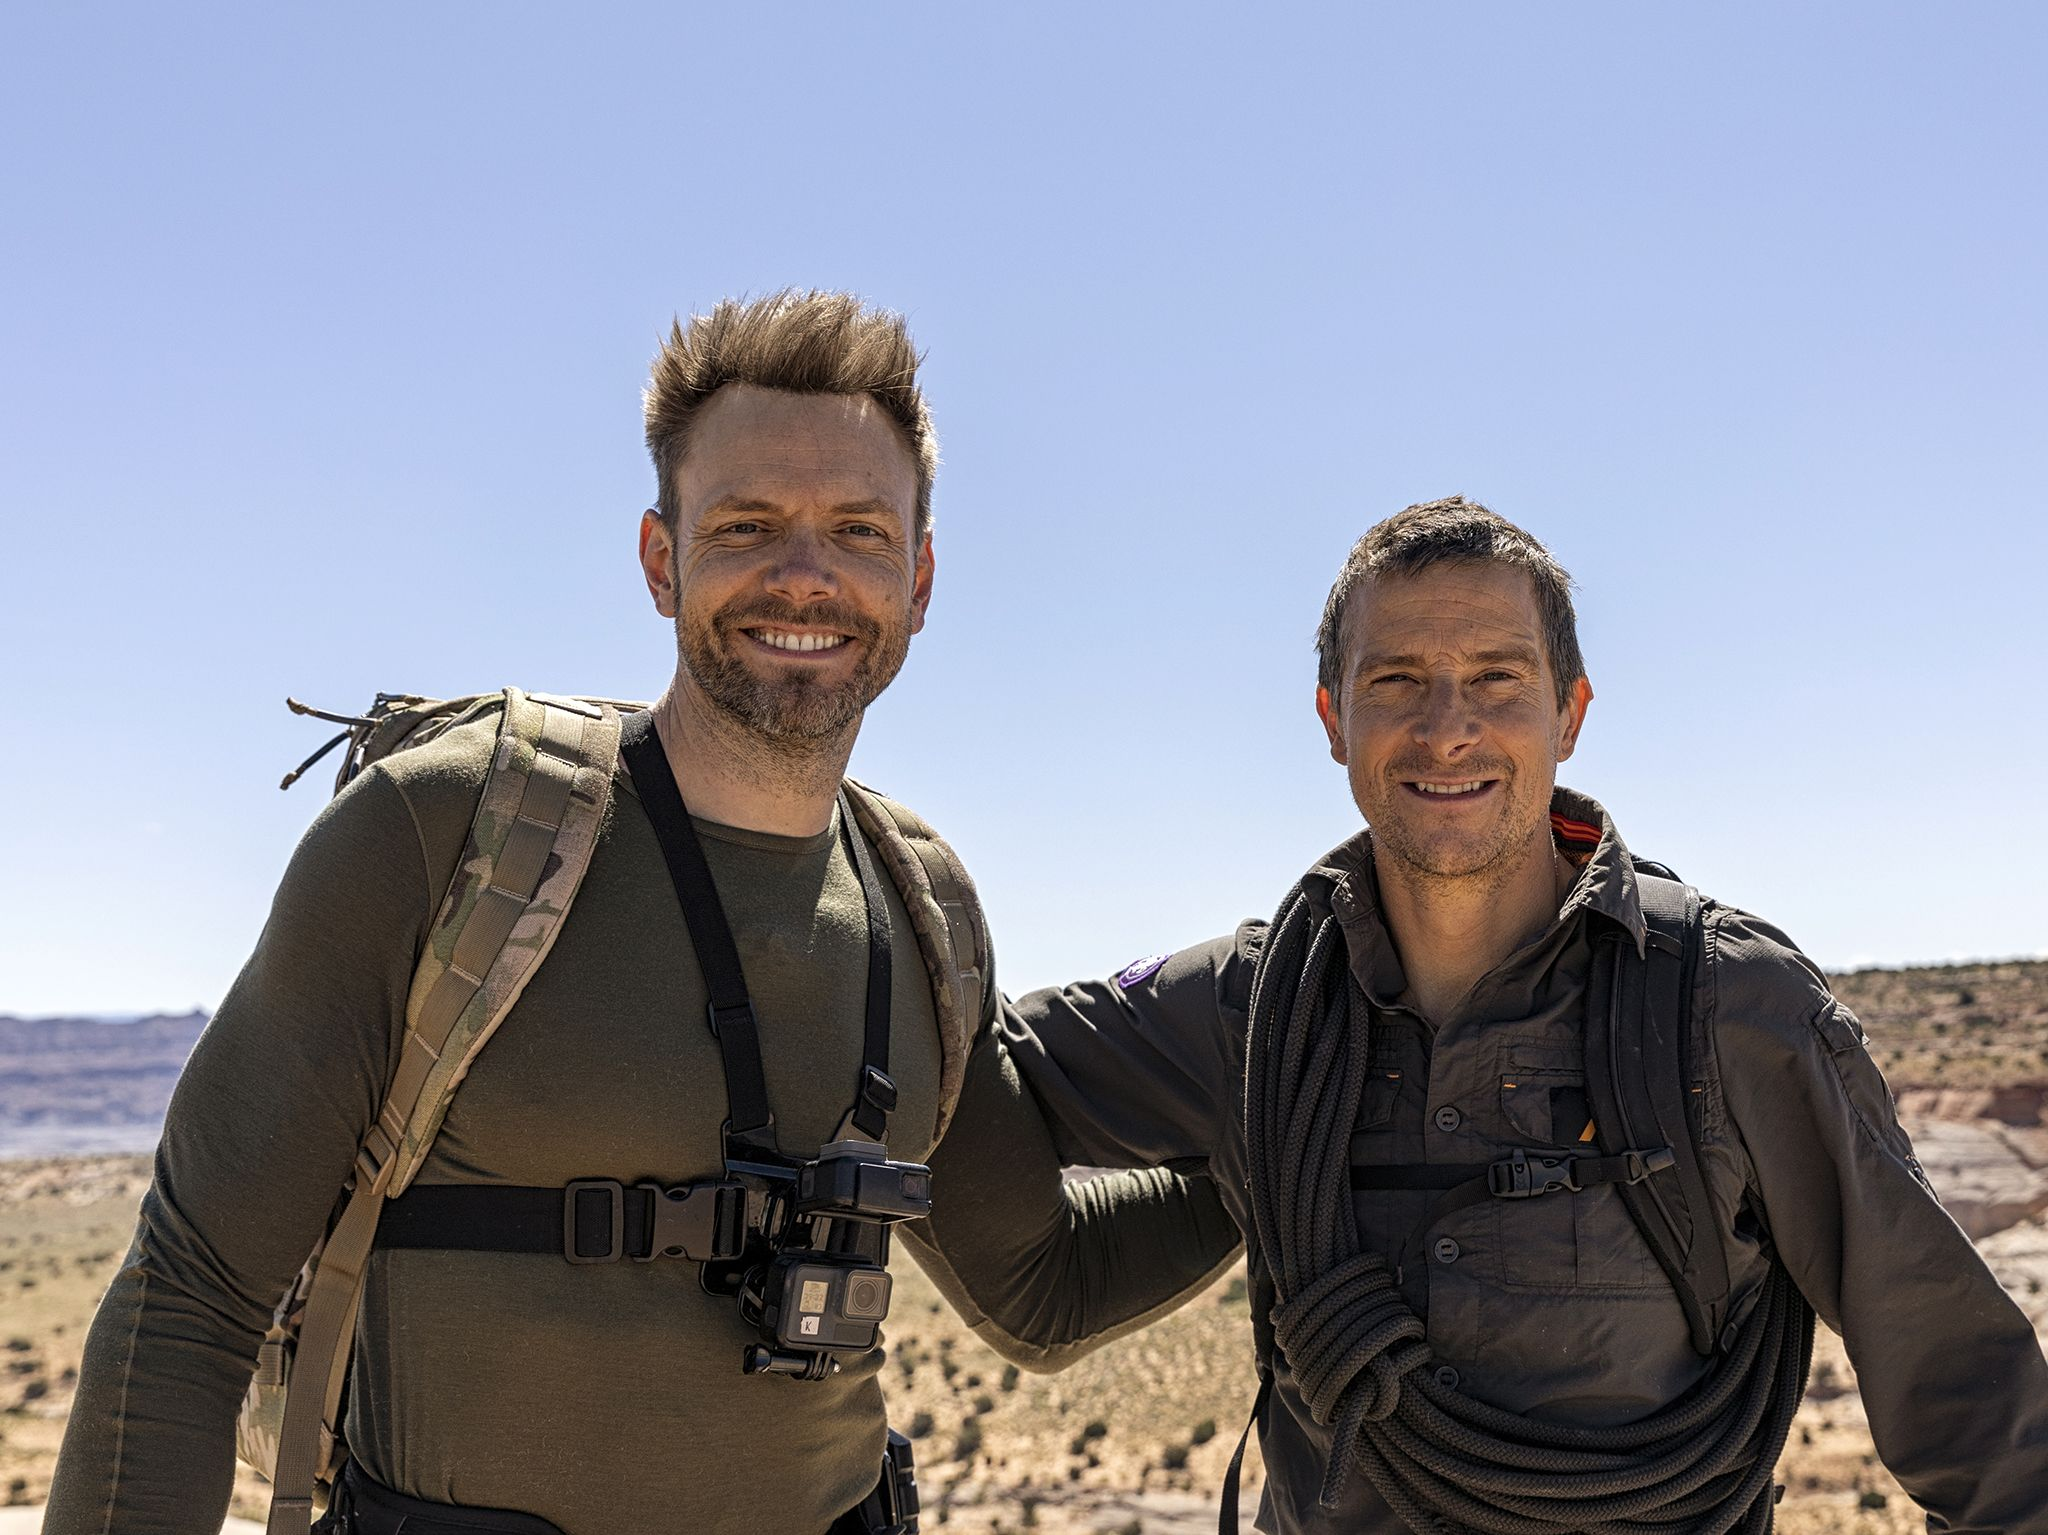 (L to R): Joel McHale and Bear Grylls. This image is from Running Wild with Bear Grylls. [Photo of the day - نوامبر 2019]